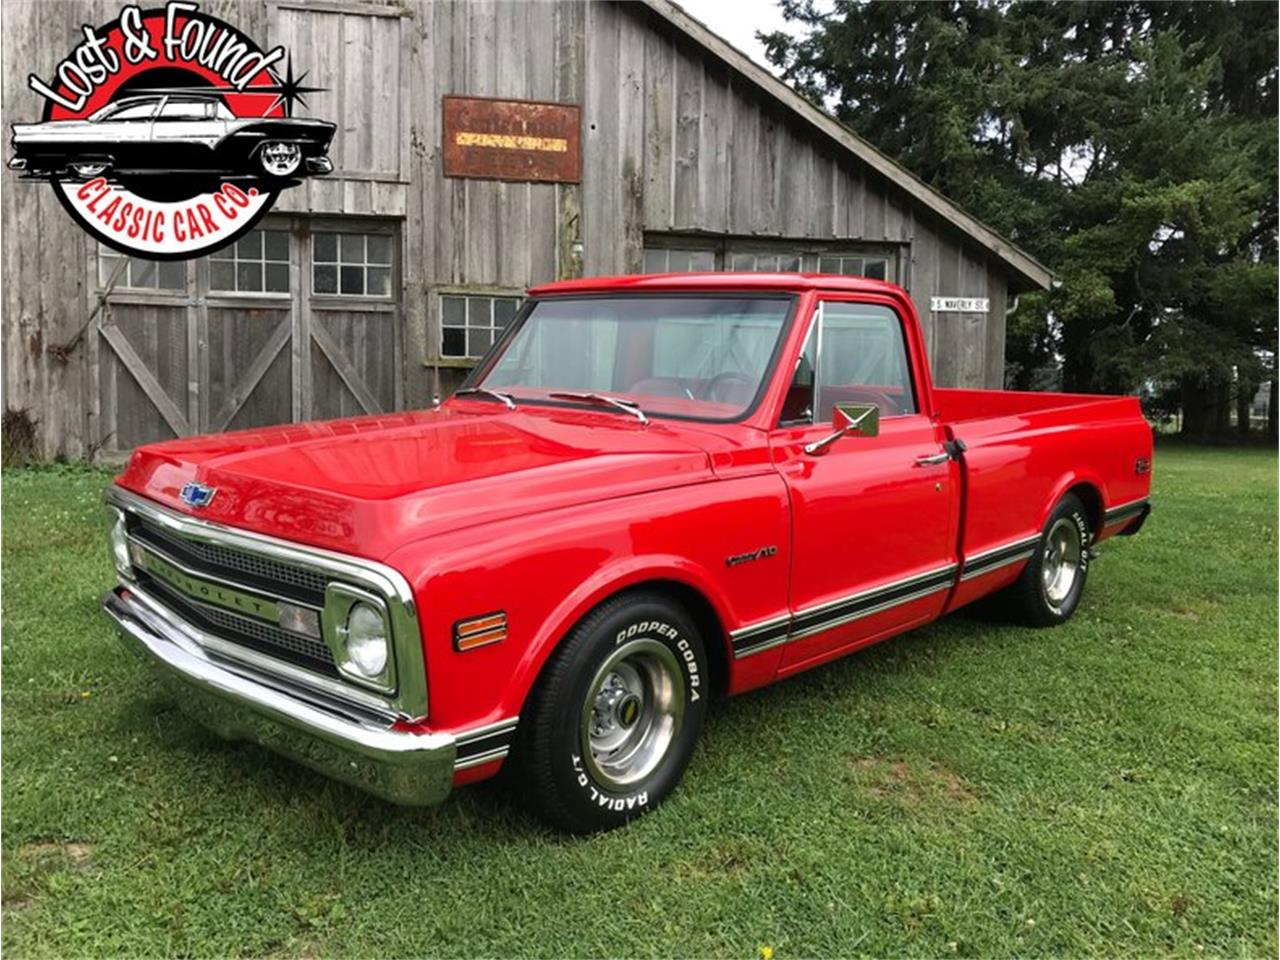 Large Picture of '69 Chevrolet C/K 10 located in Mount Vernon Washington - $39,500.00 - QYOO